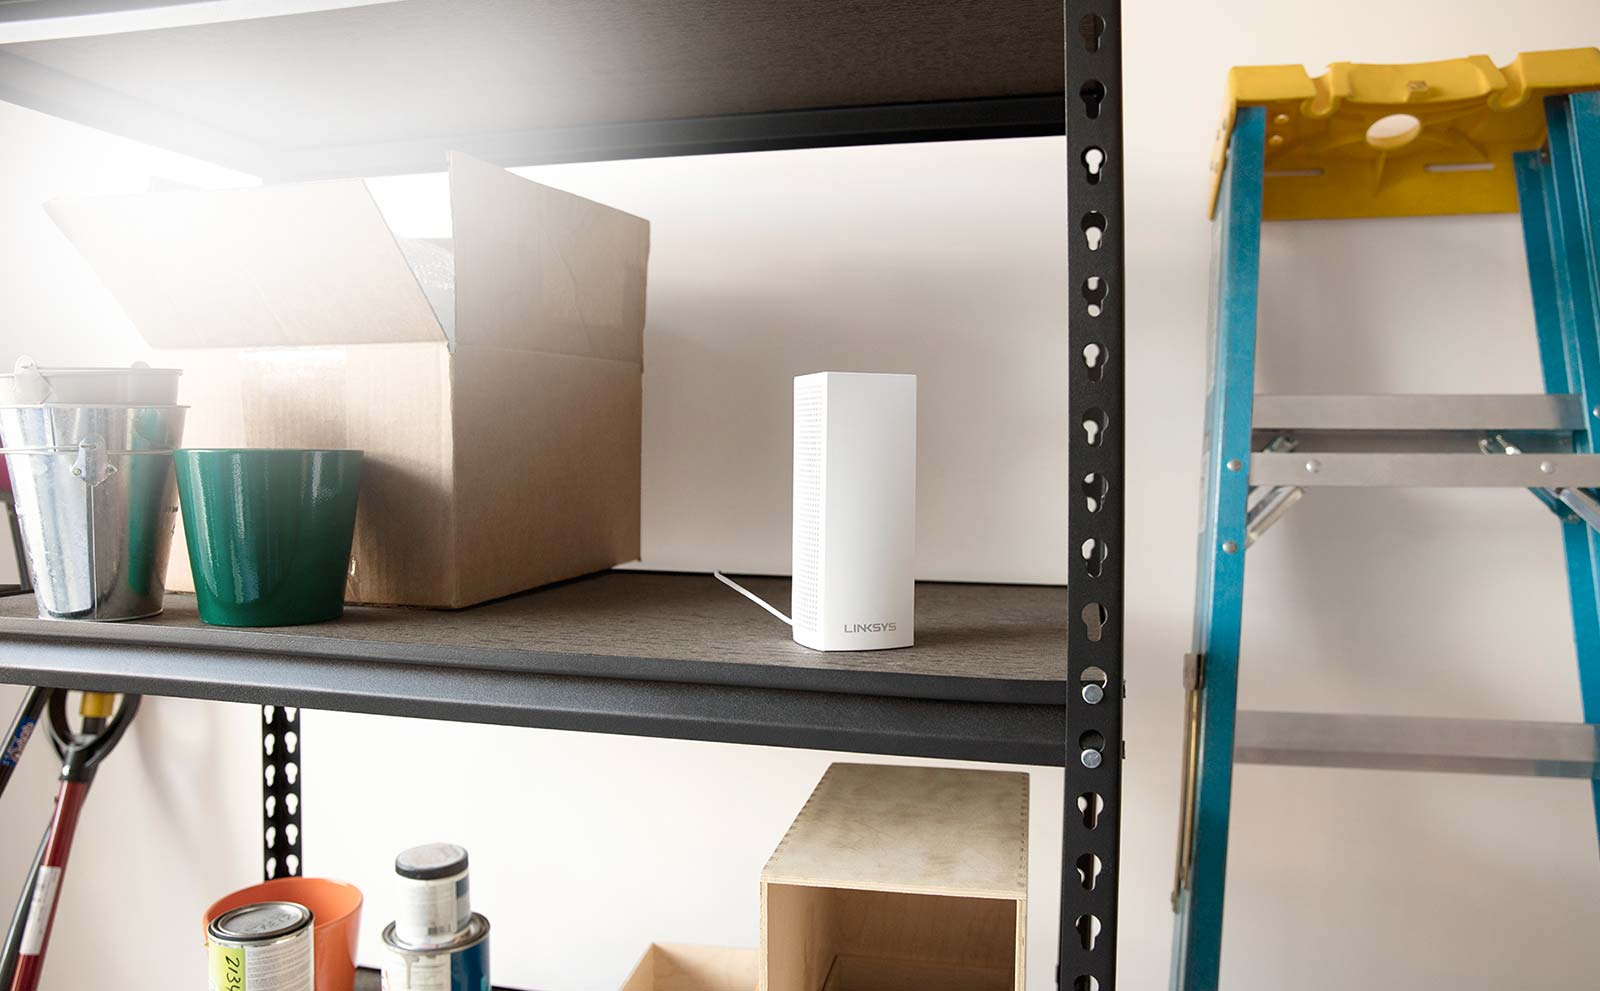 Linksys Router Login >> Linksys Aims to Envelop Your Home's Network With Its Velop Router System